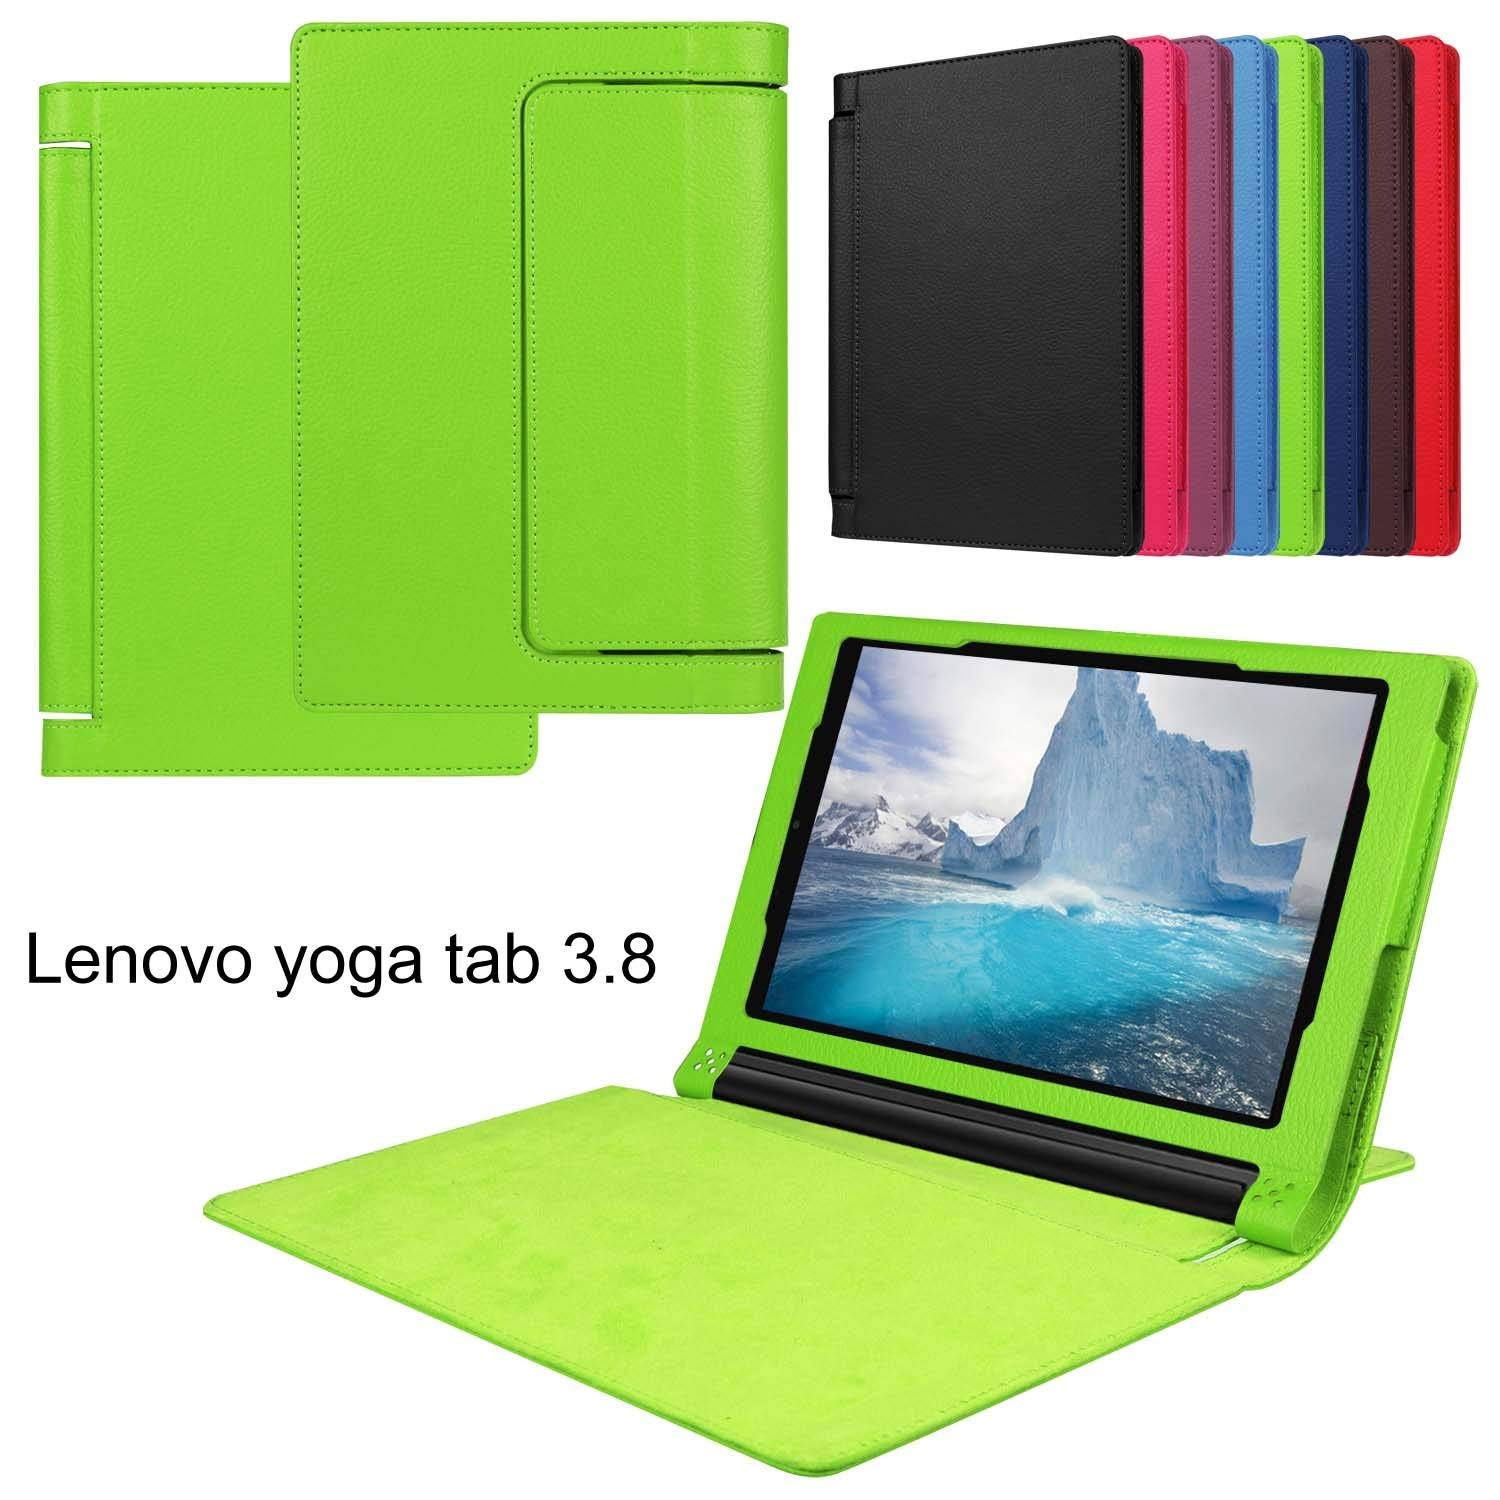 Asng Lenovo Yoga Tab 3 8 Case - Slim Folding Stand Cover Smart Case for 2015 Lenovo Yoga Tab3 8-Inch Tablet (Green)